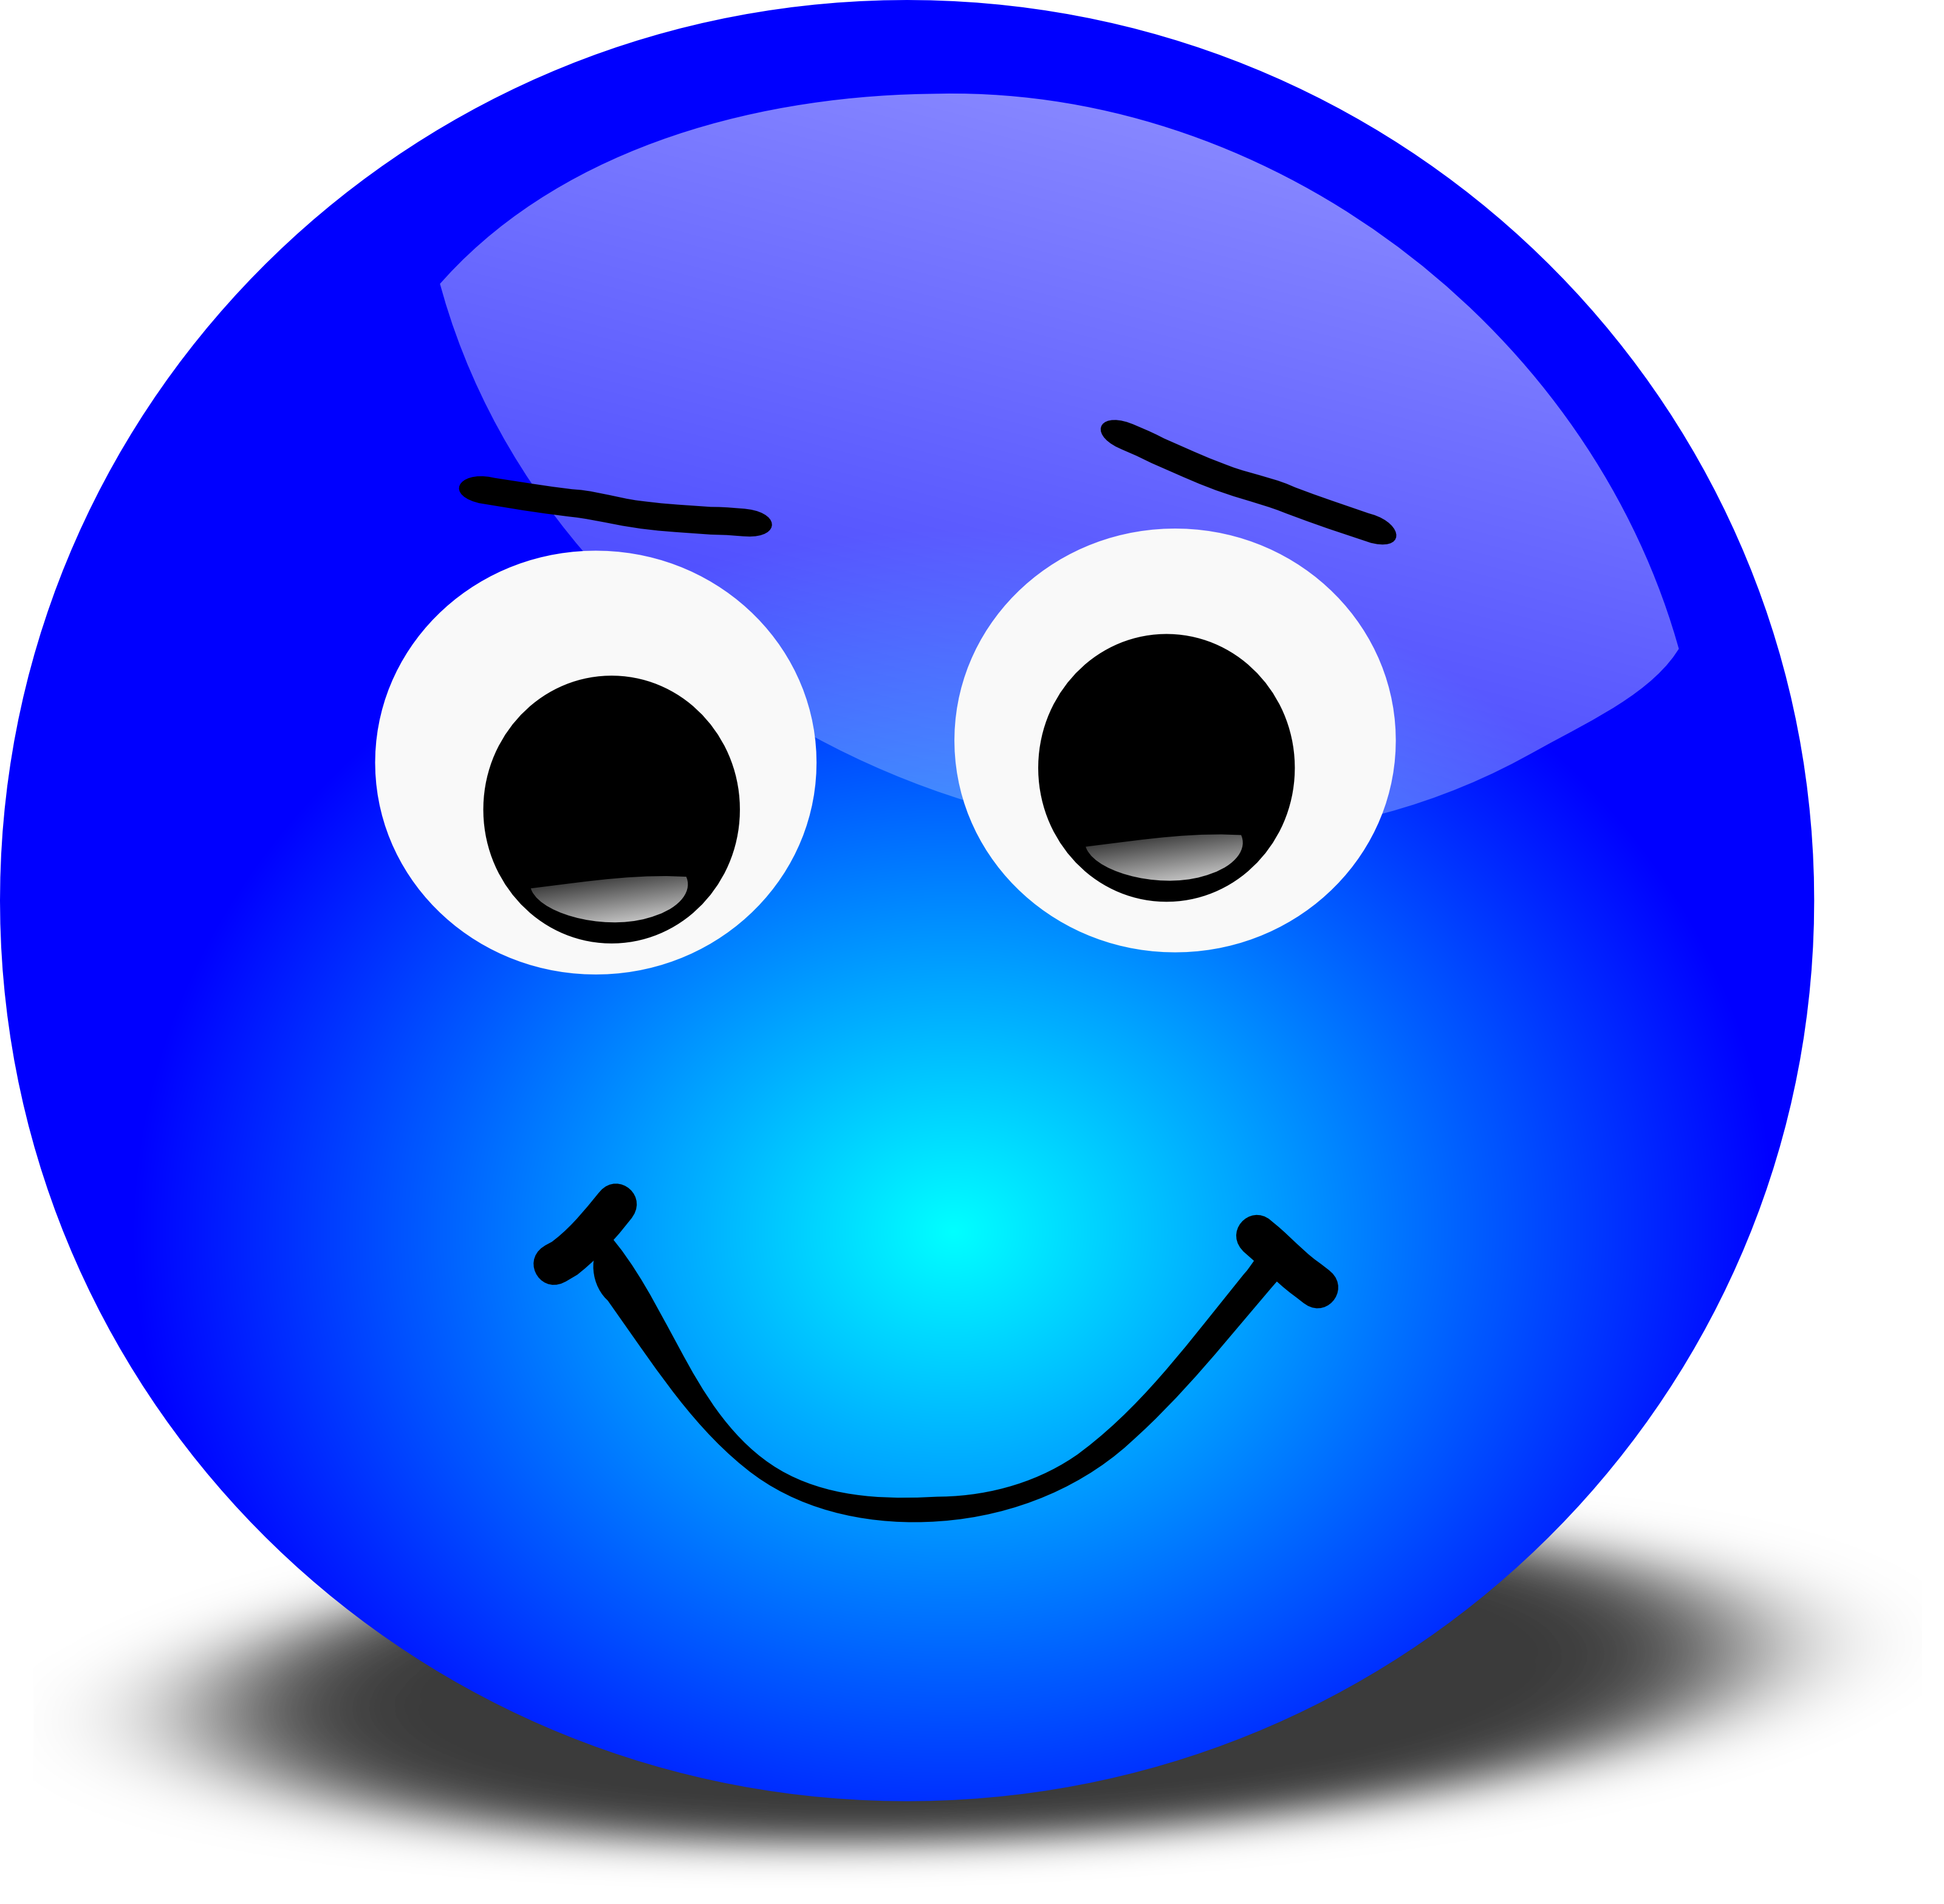 Free 3d vector graphic of a blue 3d smiley portraying an ummm ok ...